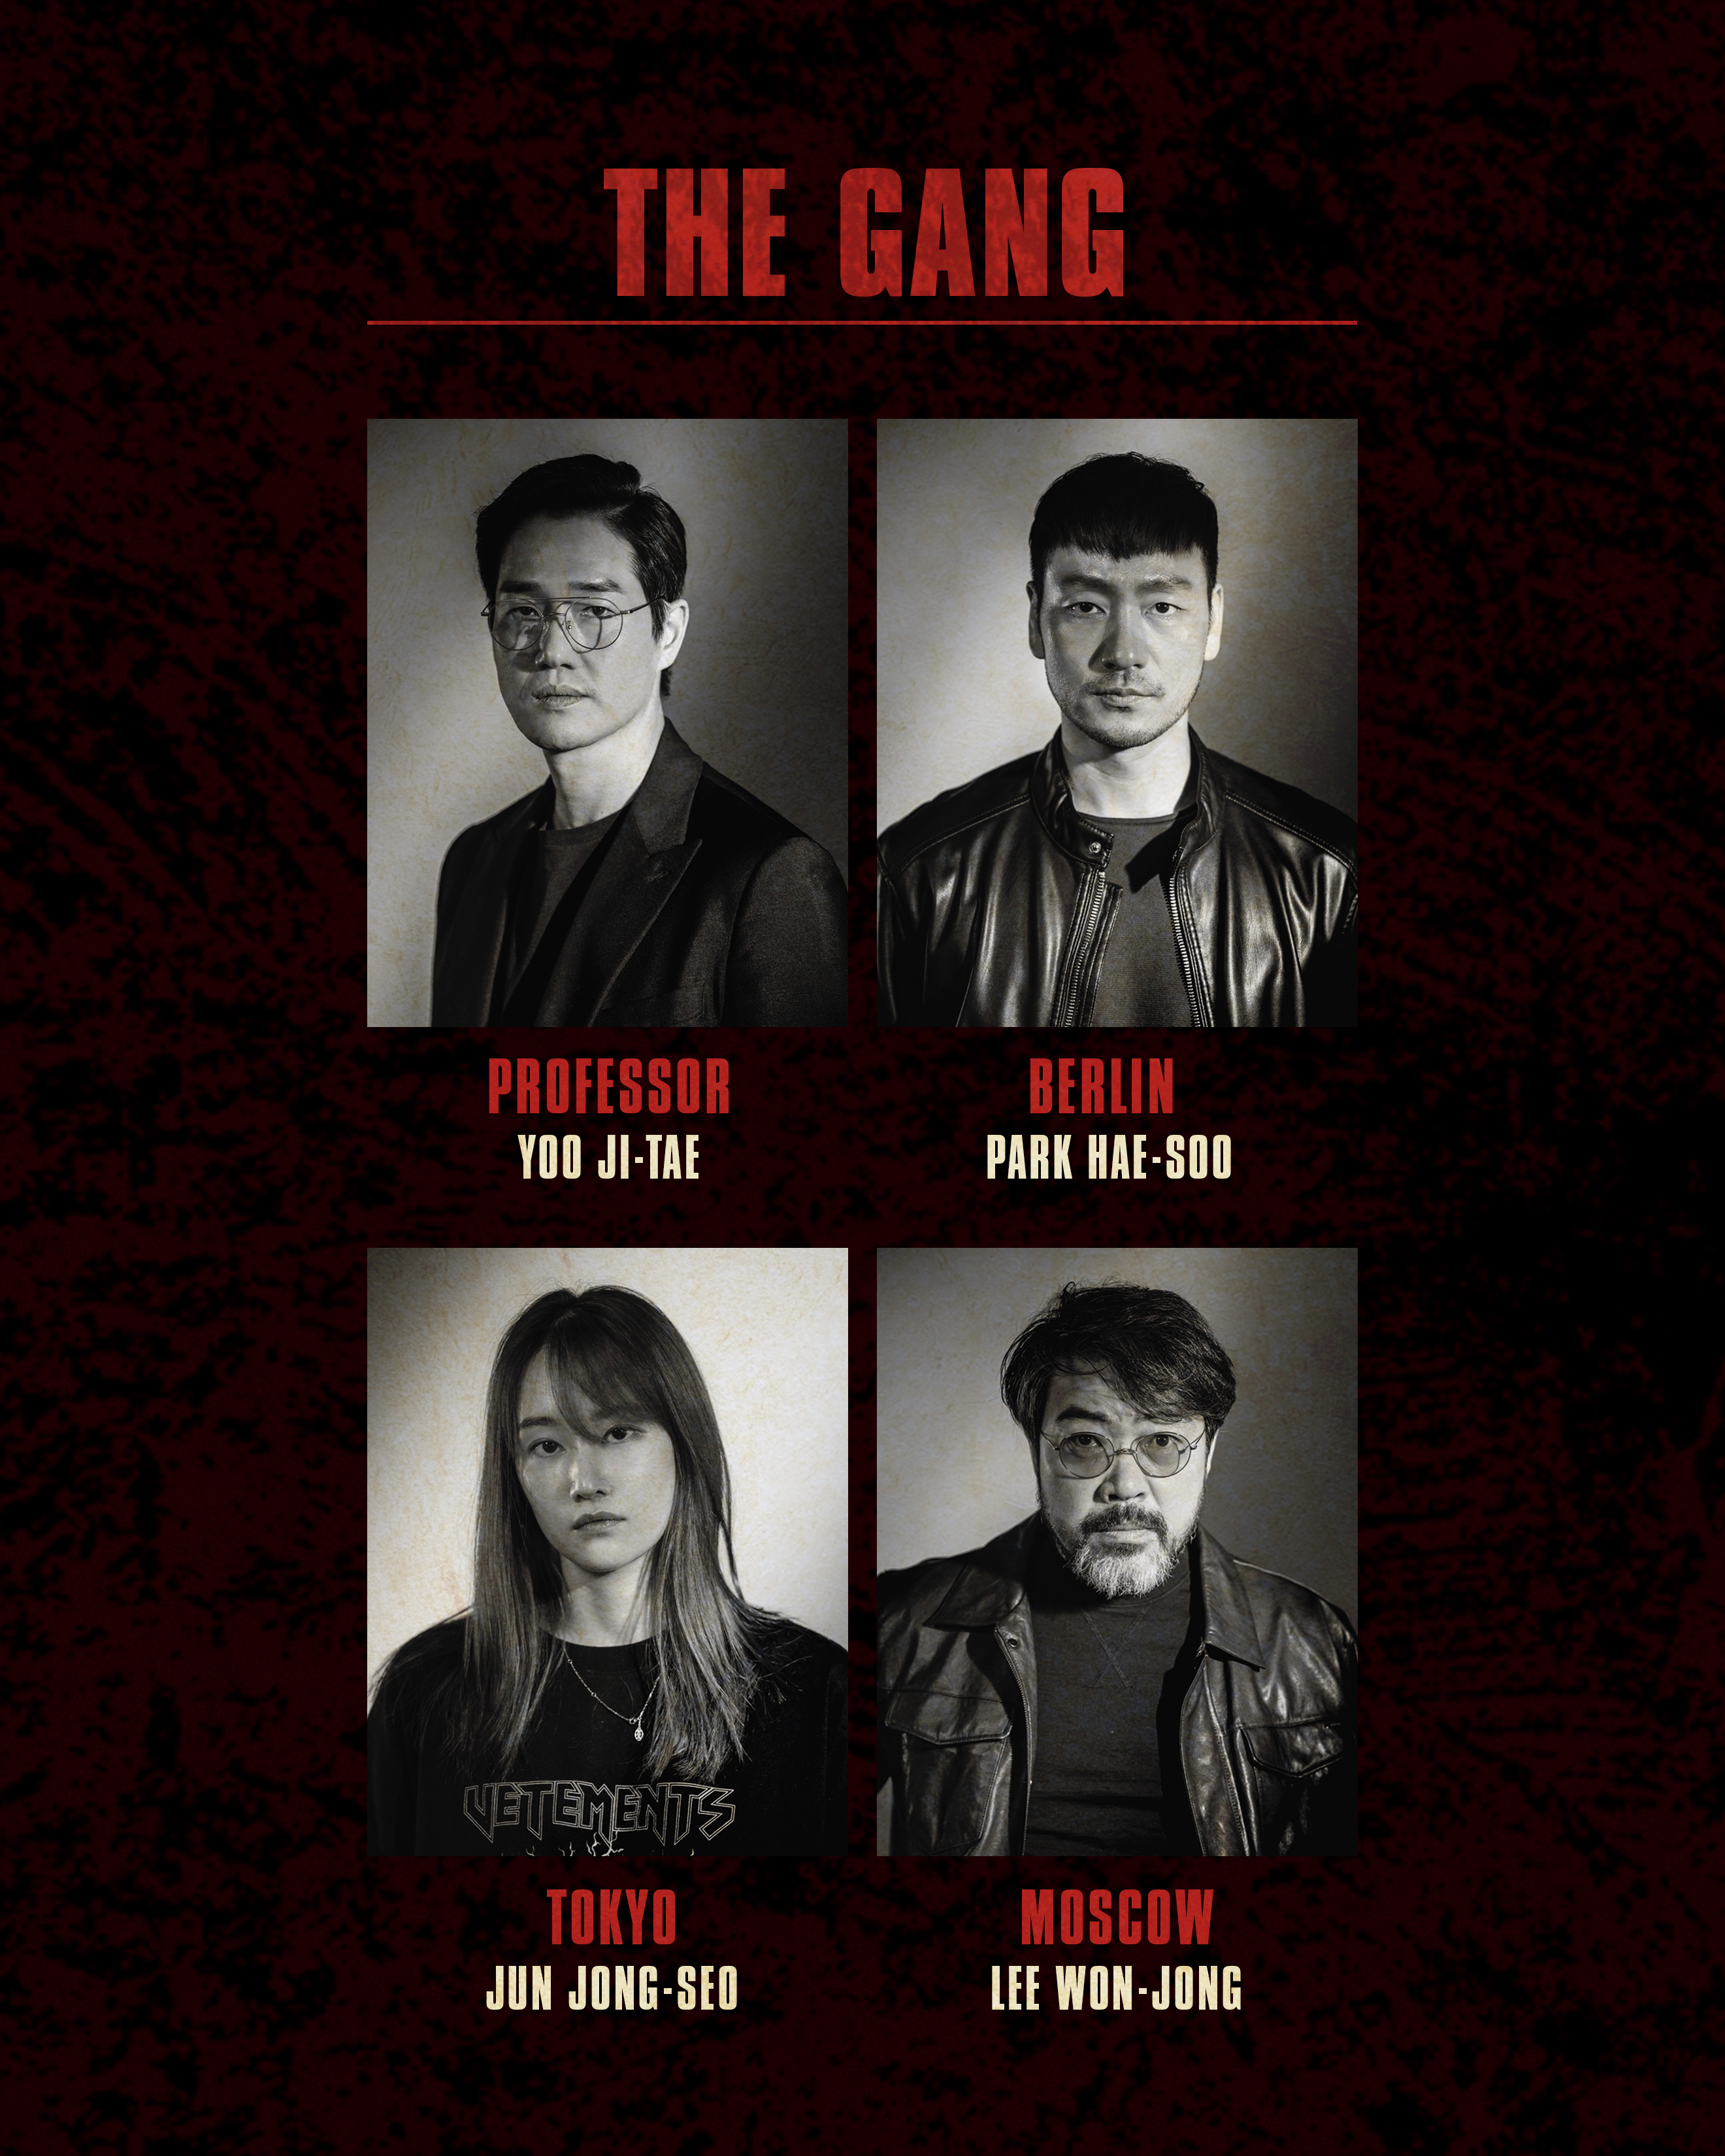 NETFLIX ANNOUNCES THE CAST FOR THE KOREAN ADAPTATION OF 'LA CASA DE PAPEL'